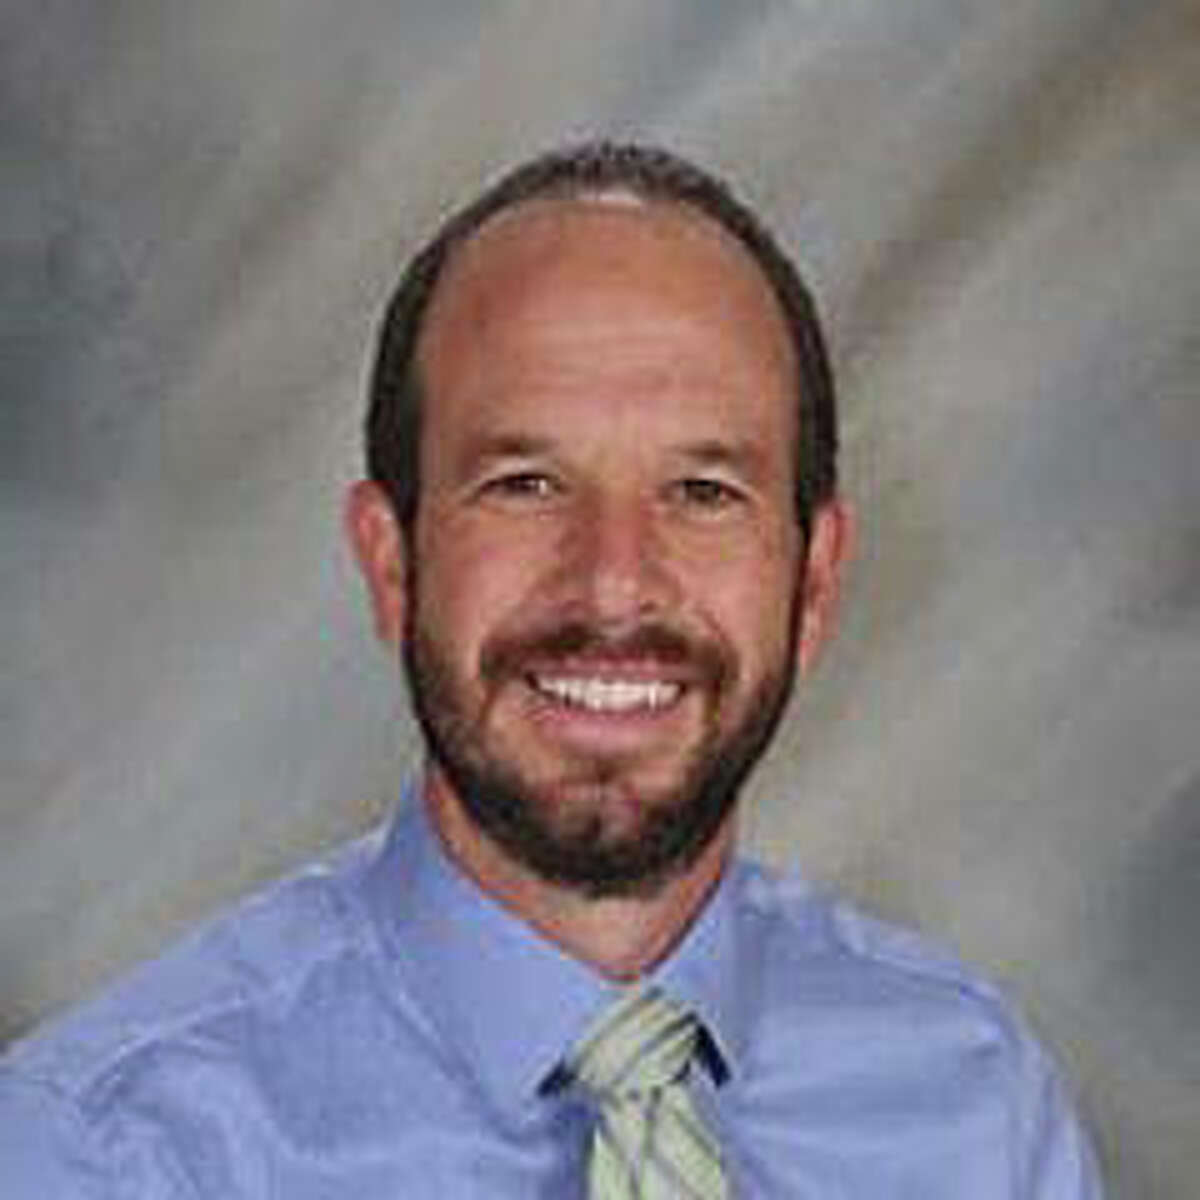 Edwardsville District 7 Superintendent Dr. Jason Henderson will step down from his position at the end of the school year. He announced his resignation at Monday's board meeting.